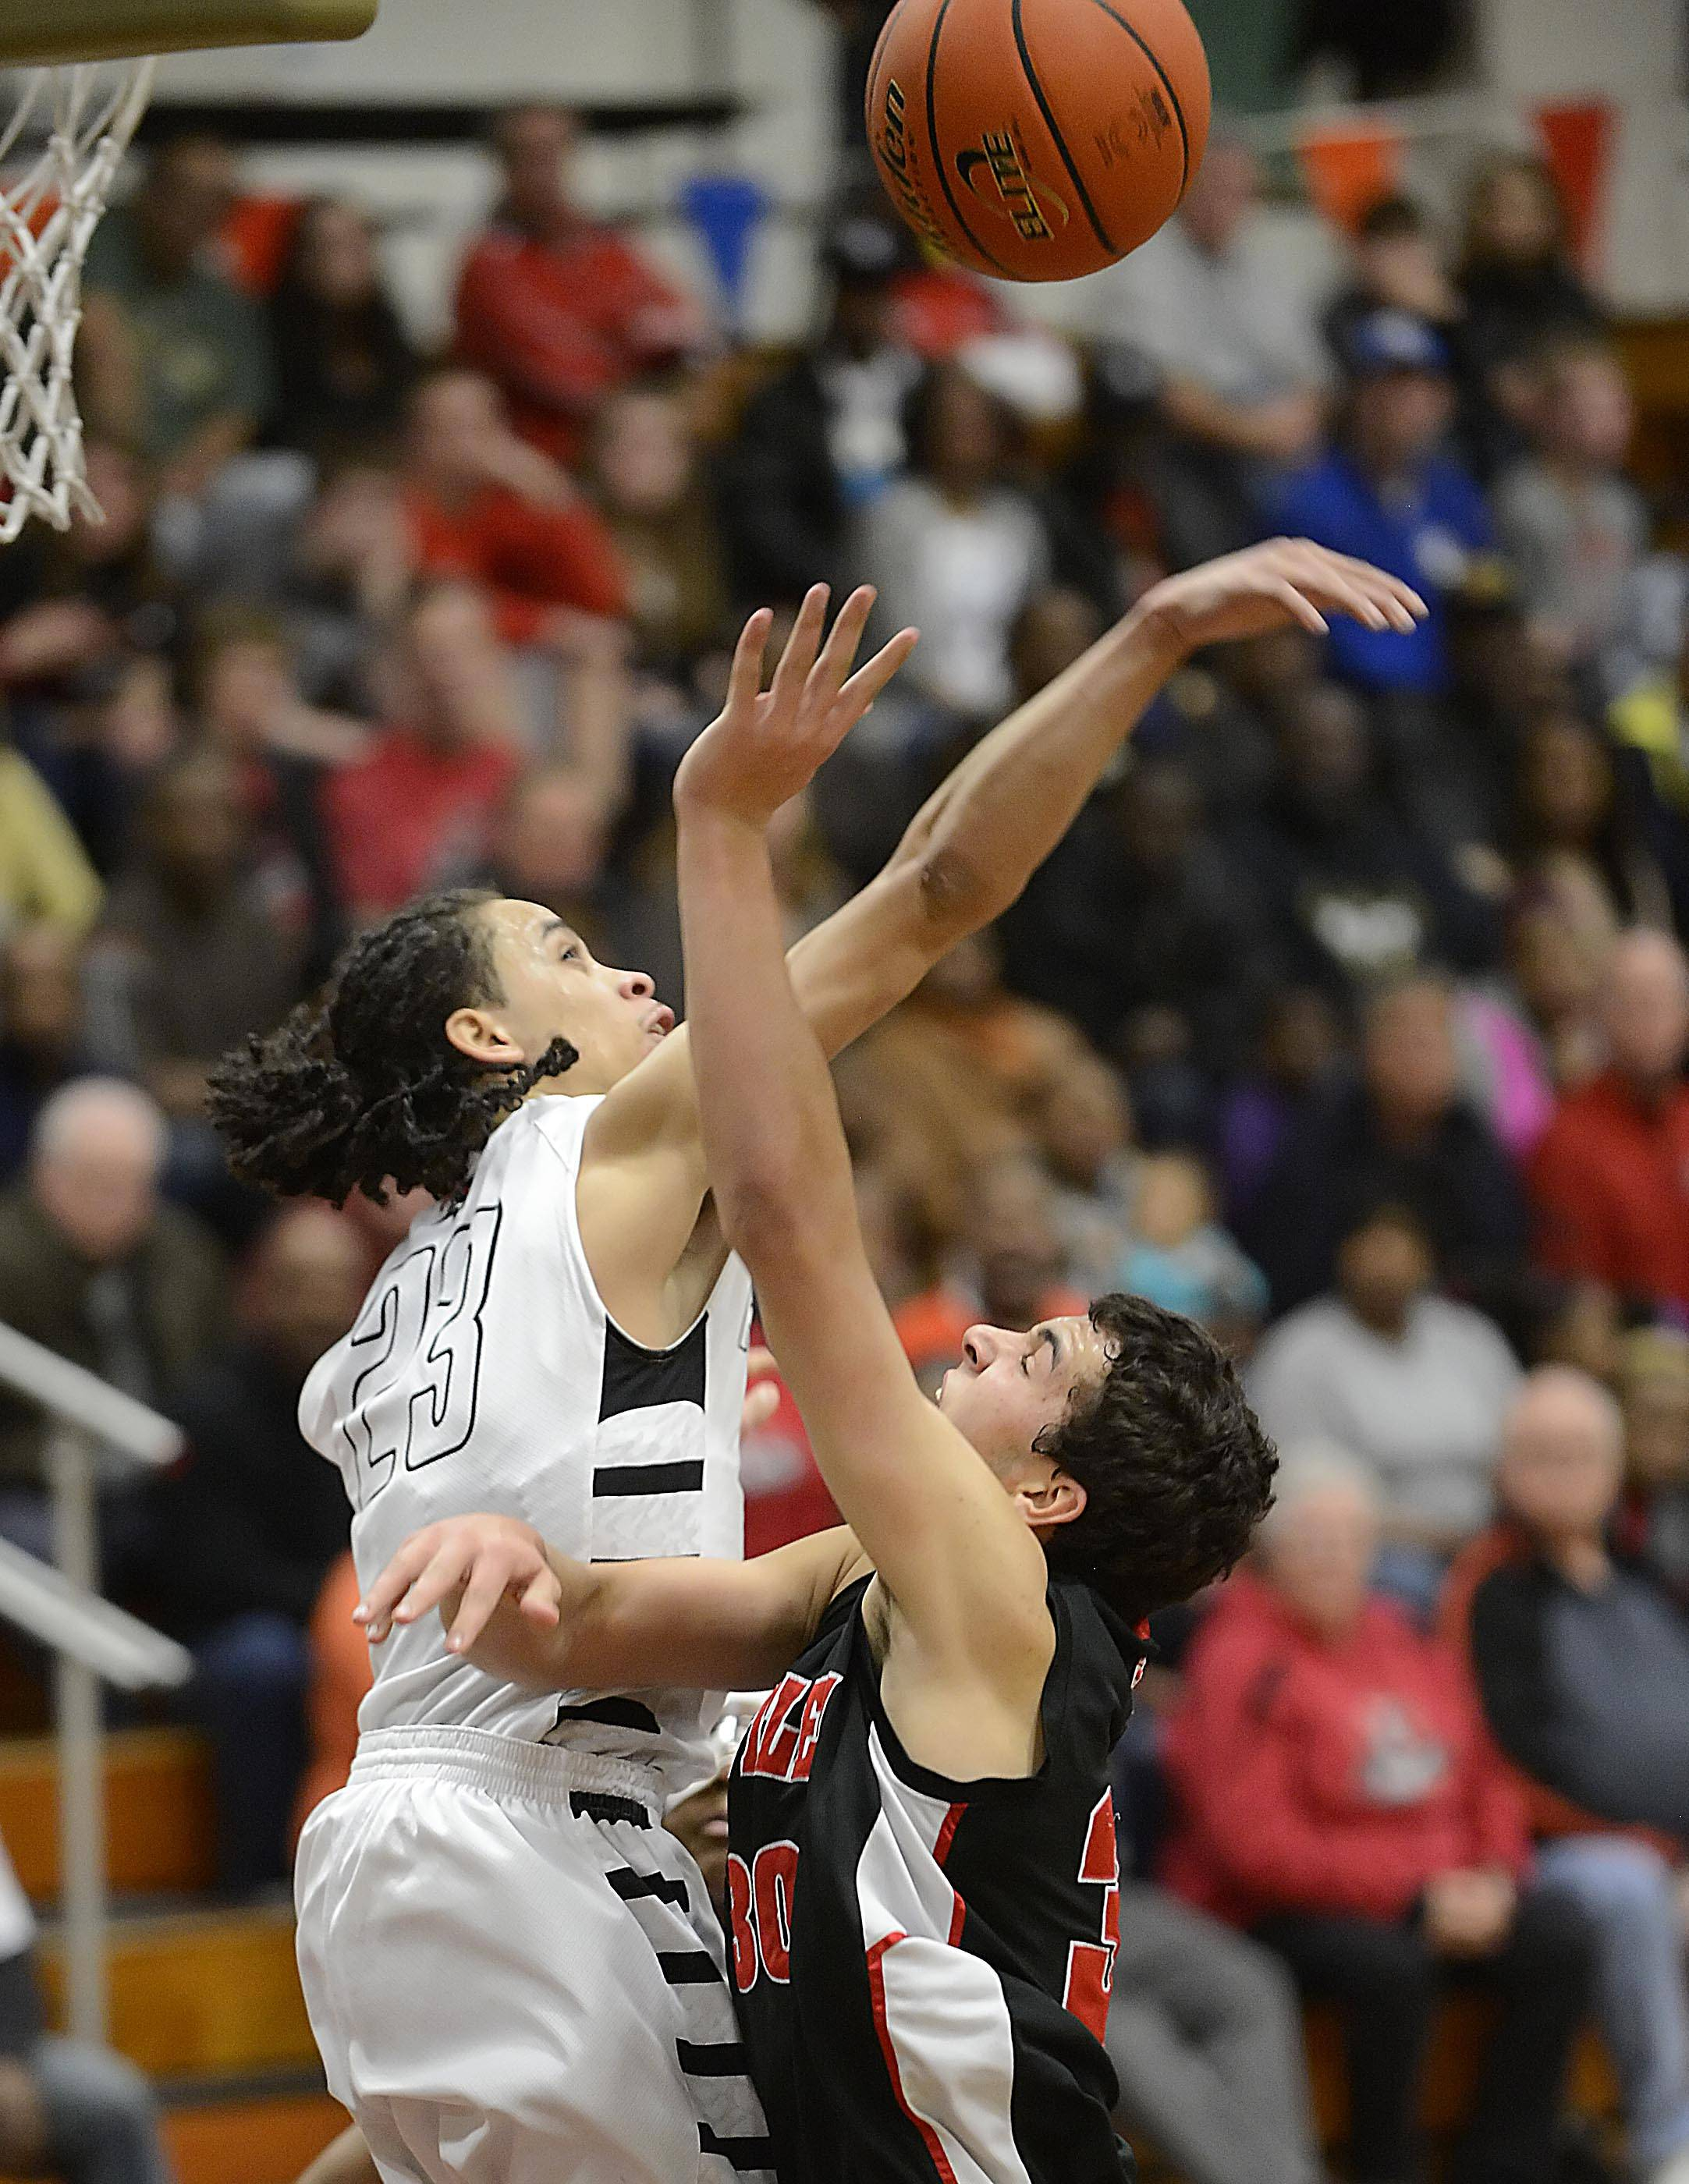 Huntley's Riley Wicks has his shot blocked by Rockford Auburn's Laytwan Porter in the Class 4A Elgin sectional semifinal Tuesday.